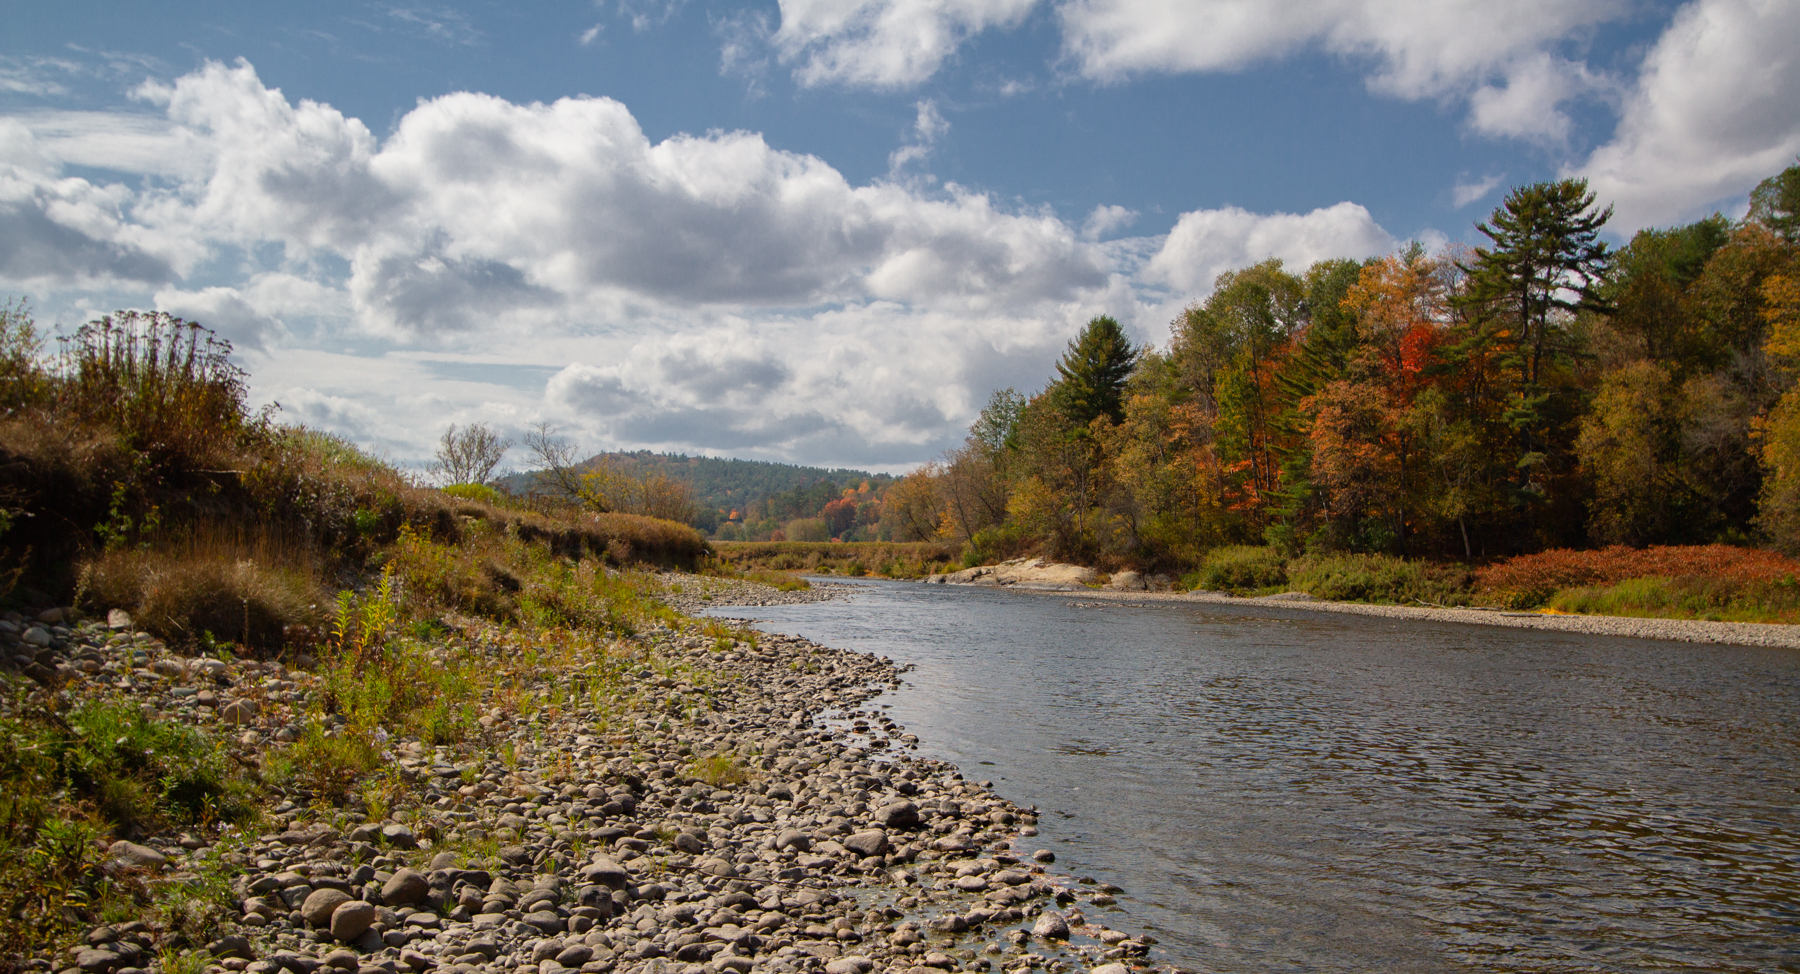 The Ammonoosuc River winds through Lisbon, N.H. September 29, 2020, past a future NRCS-funded streambank stabilization project for the Ammonoosuc Conservation Trust.